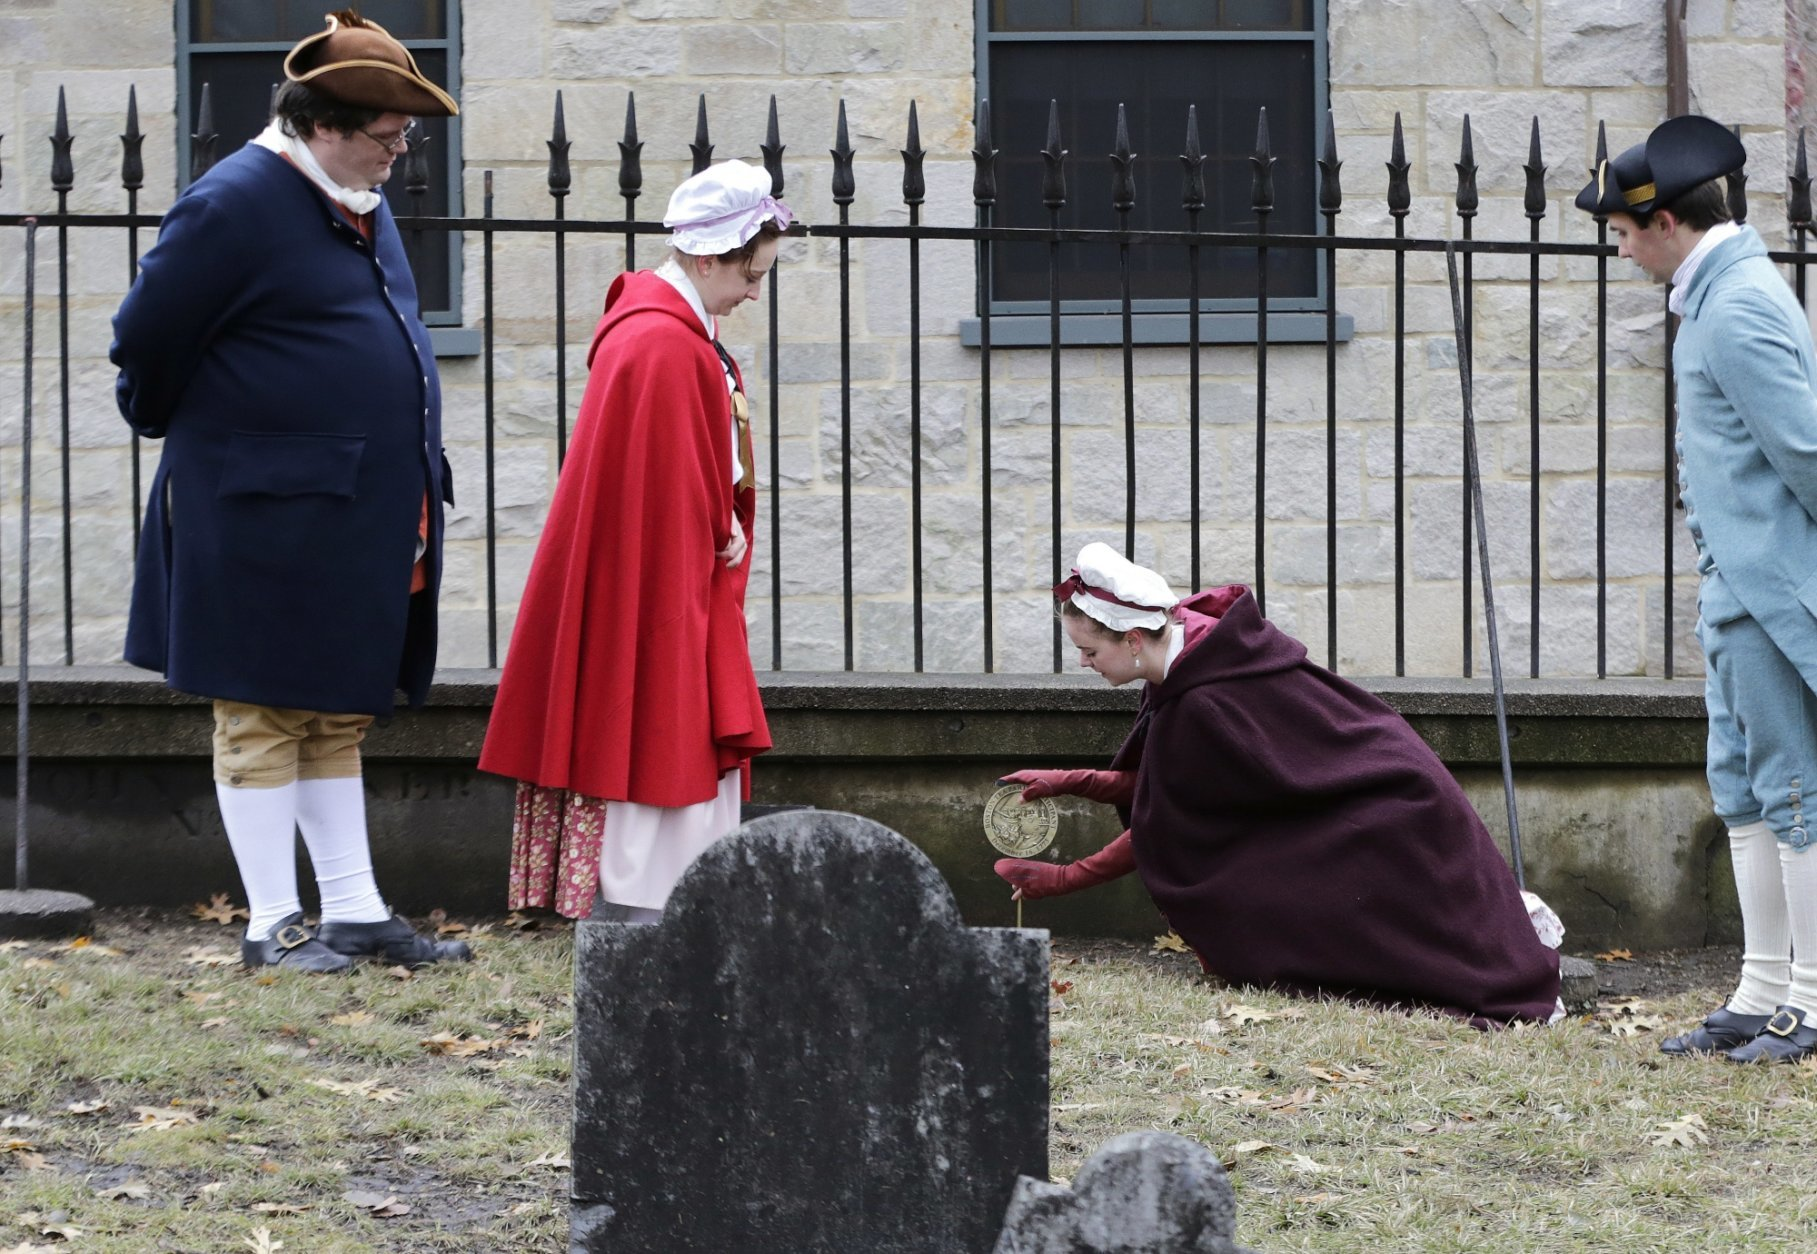 Actor-interpreters from the Boston Tea Party Ships and Museum, from left, Tim Lawton, Jillian Couillard, Sierra Grabowska and Stephen Chueka place commemorative markers, Tuesday, Nov. 27, 2018, at Central Burying Ground on Boston Common at the graves of participants in the Dec. 16, 1773 protest known as the Boston Tea Party. This year is the 245th anniversary of the protest during which colonists protesting taxation without representation threw British tea into Boston Harbor, considered a pivotal event that led to the American Revolution. (AP Photo/Elise Amendola)